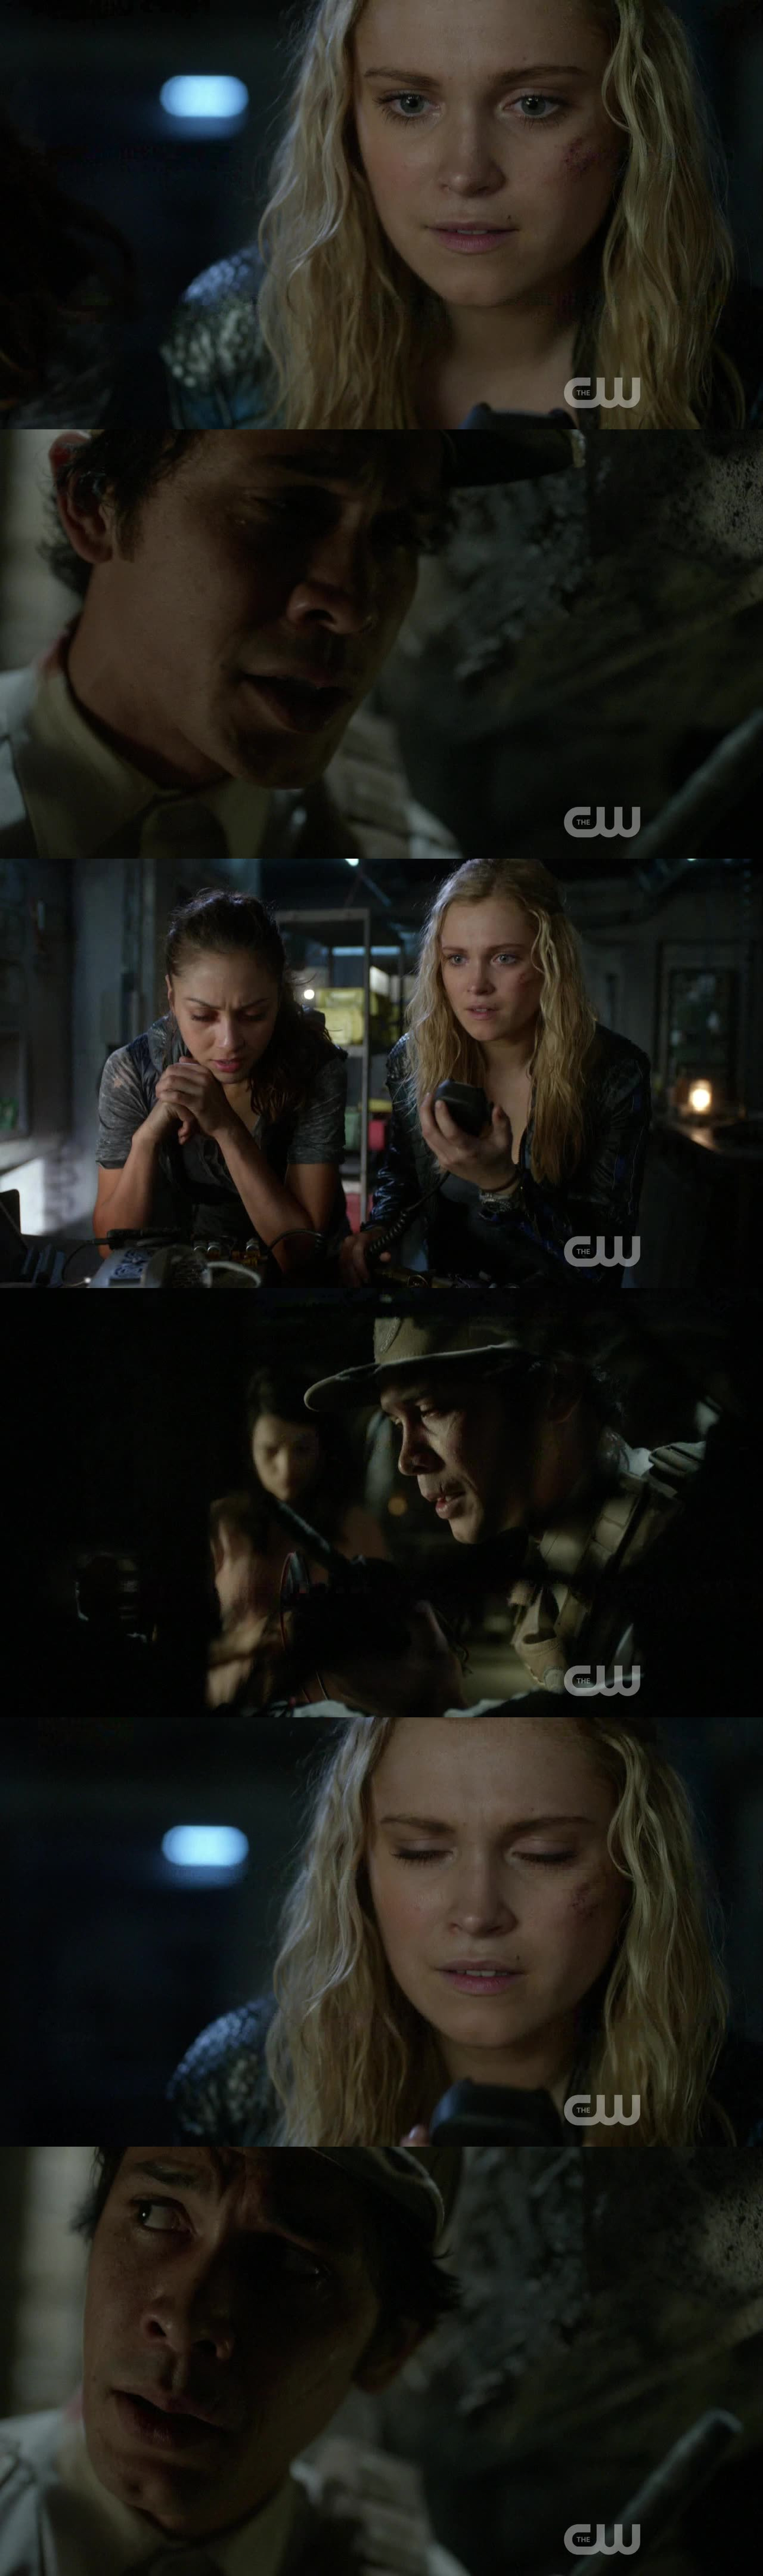 I LOVED THAT SCENE SO MUCH !!!! Their faves when they heard each other's voices... #Bellarke *.*